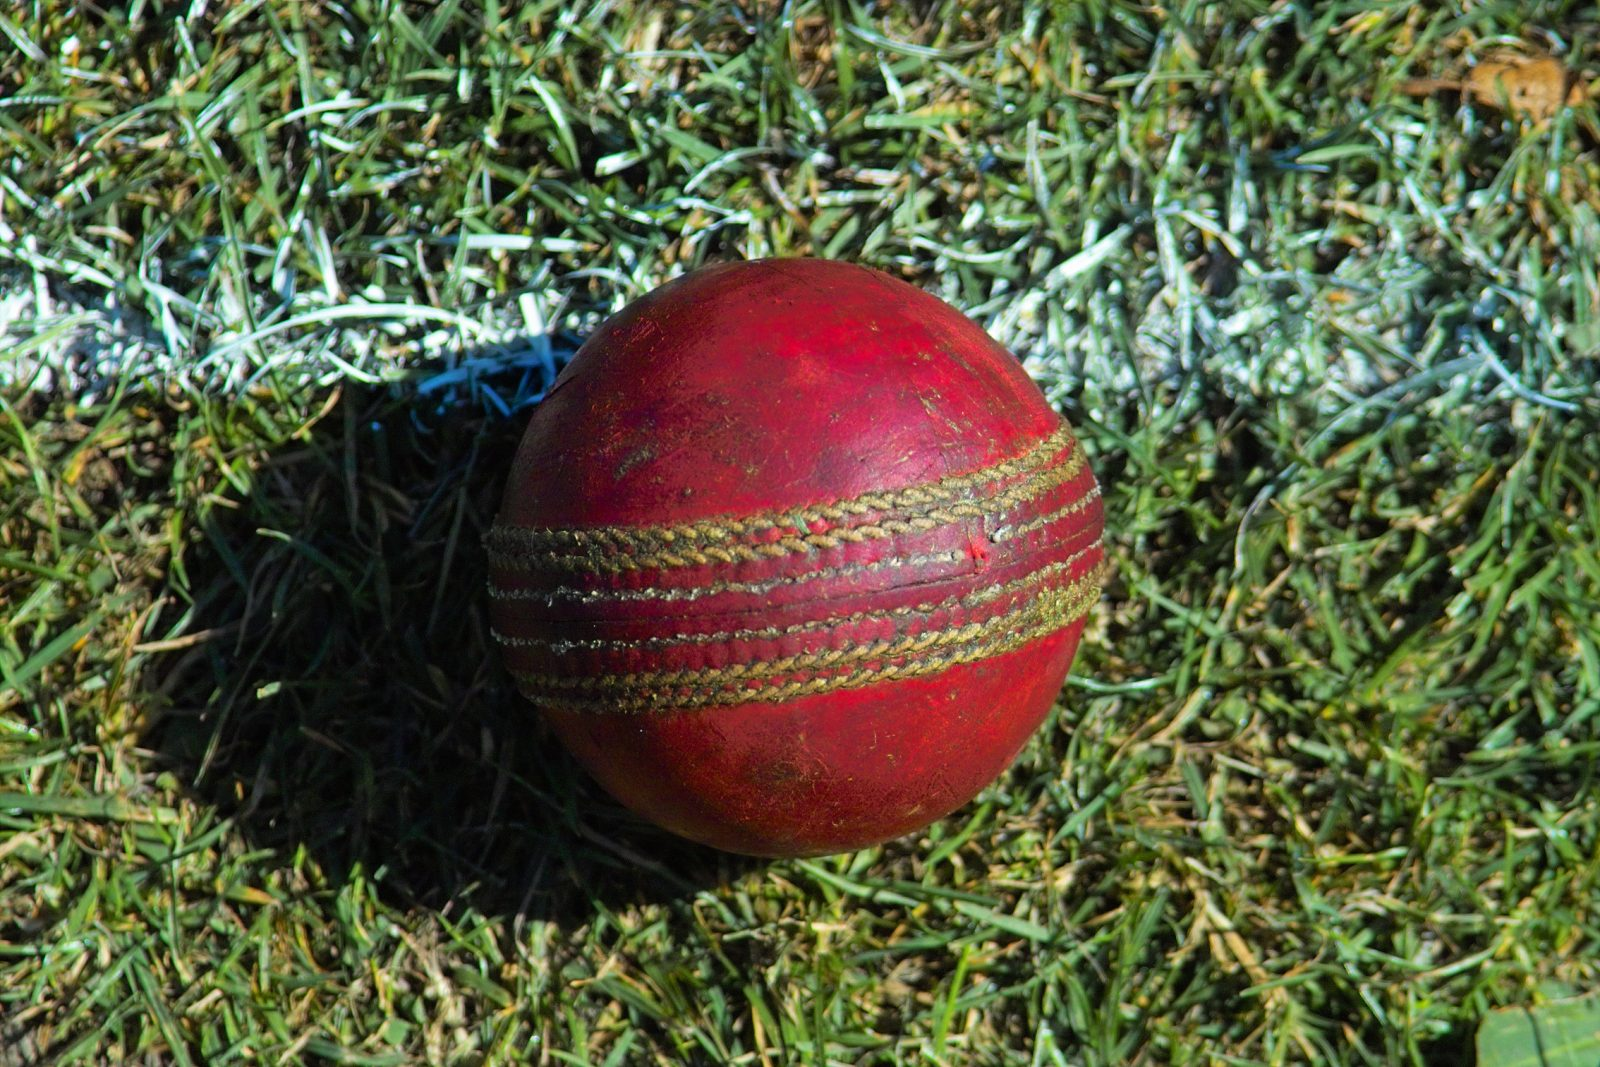 Who will bowl first today match prediction